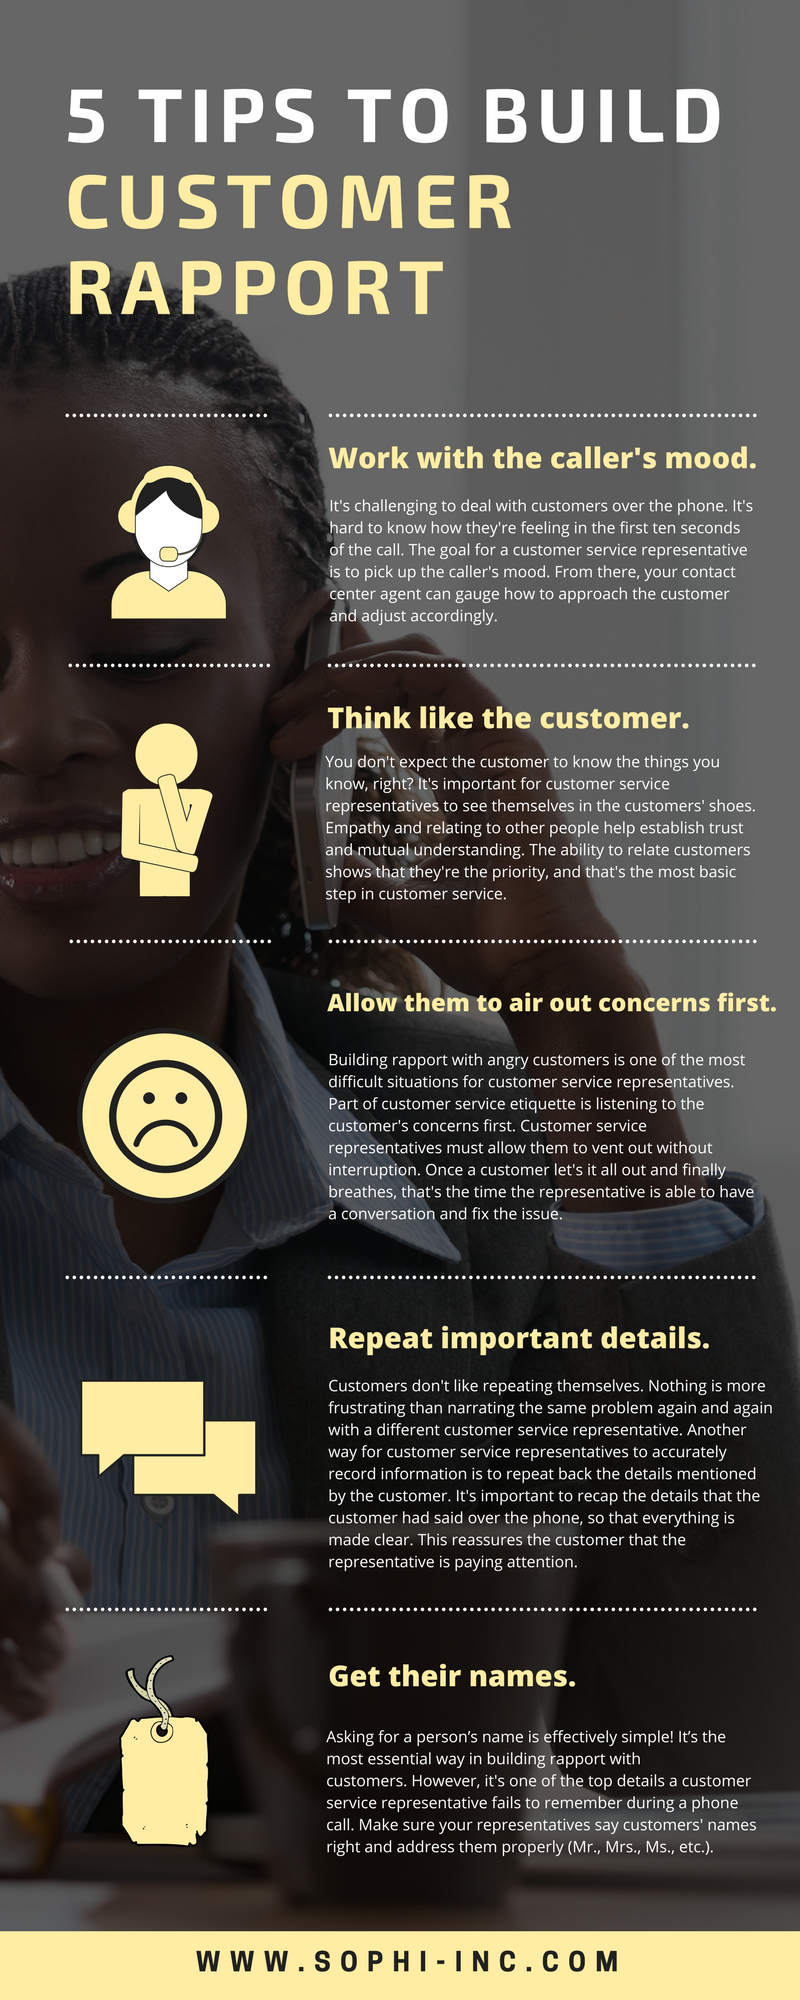 5 Tips to Build Customer Rapport.png